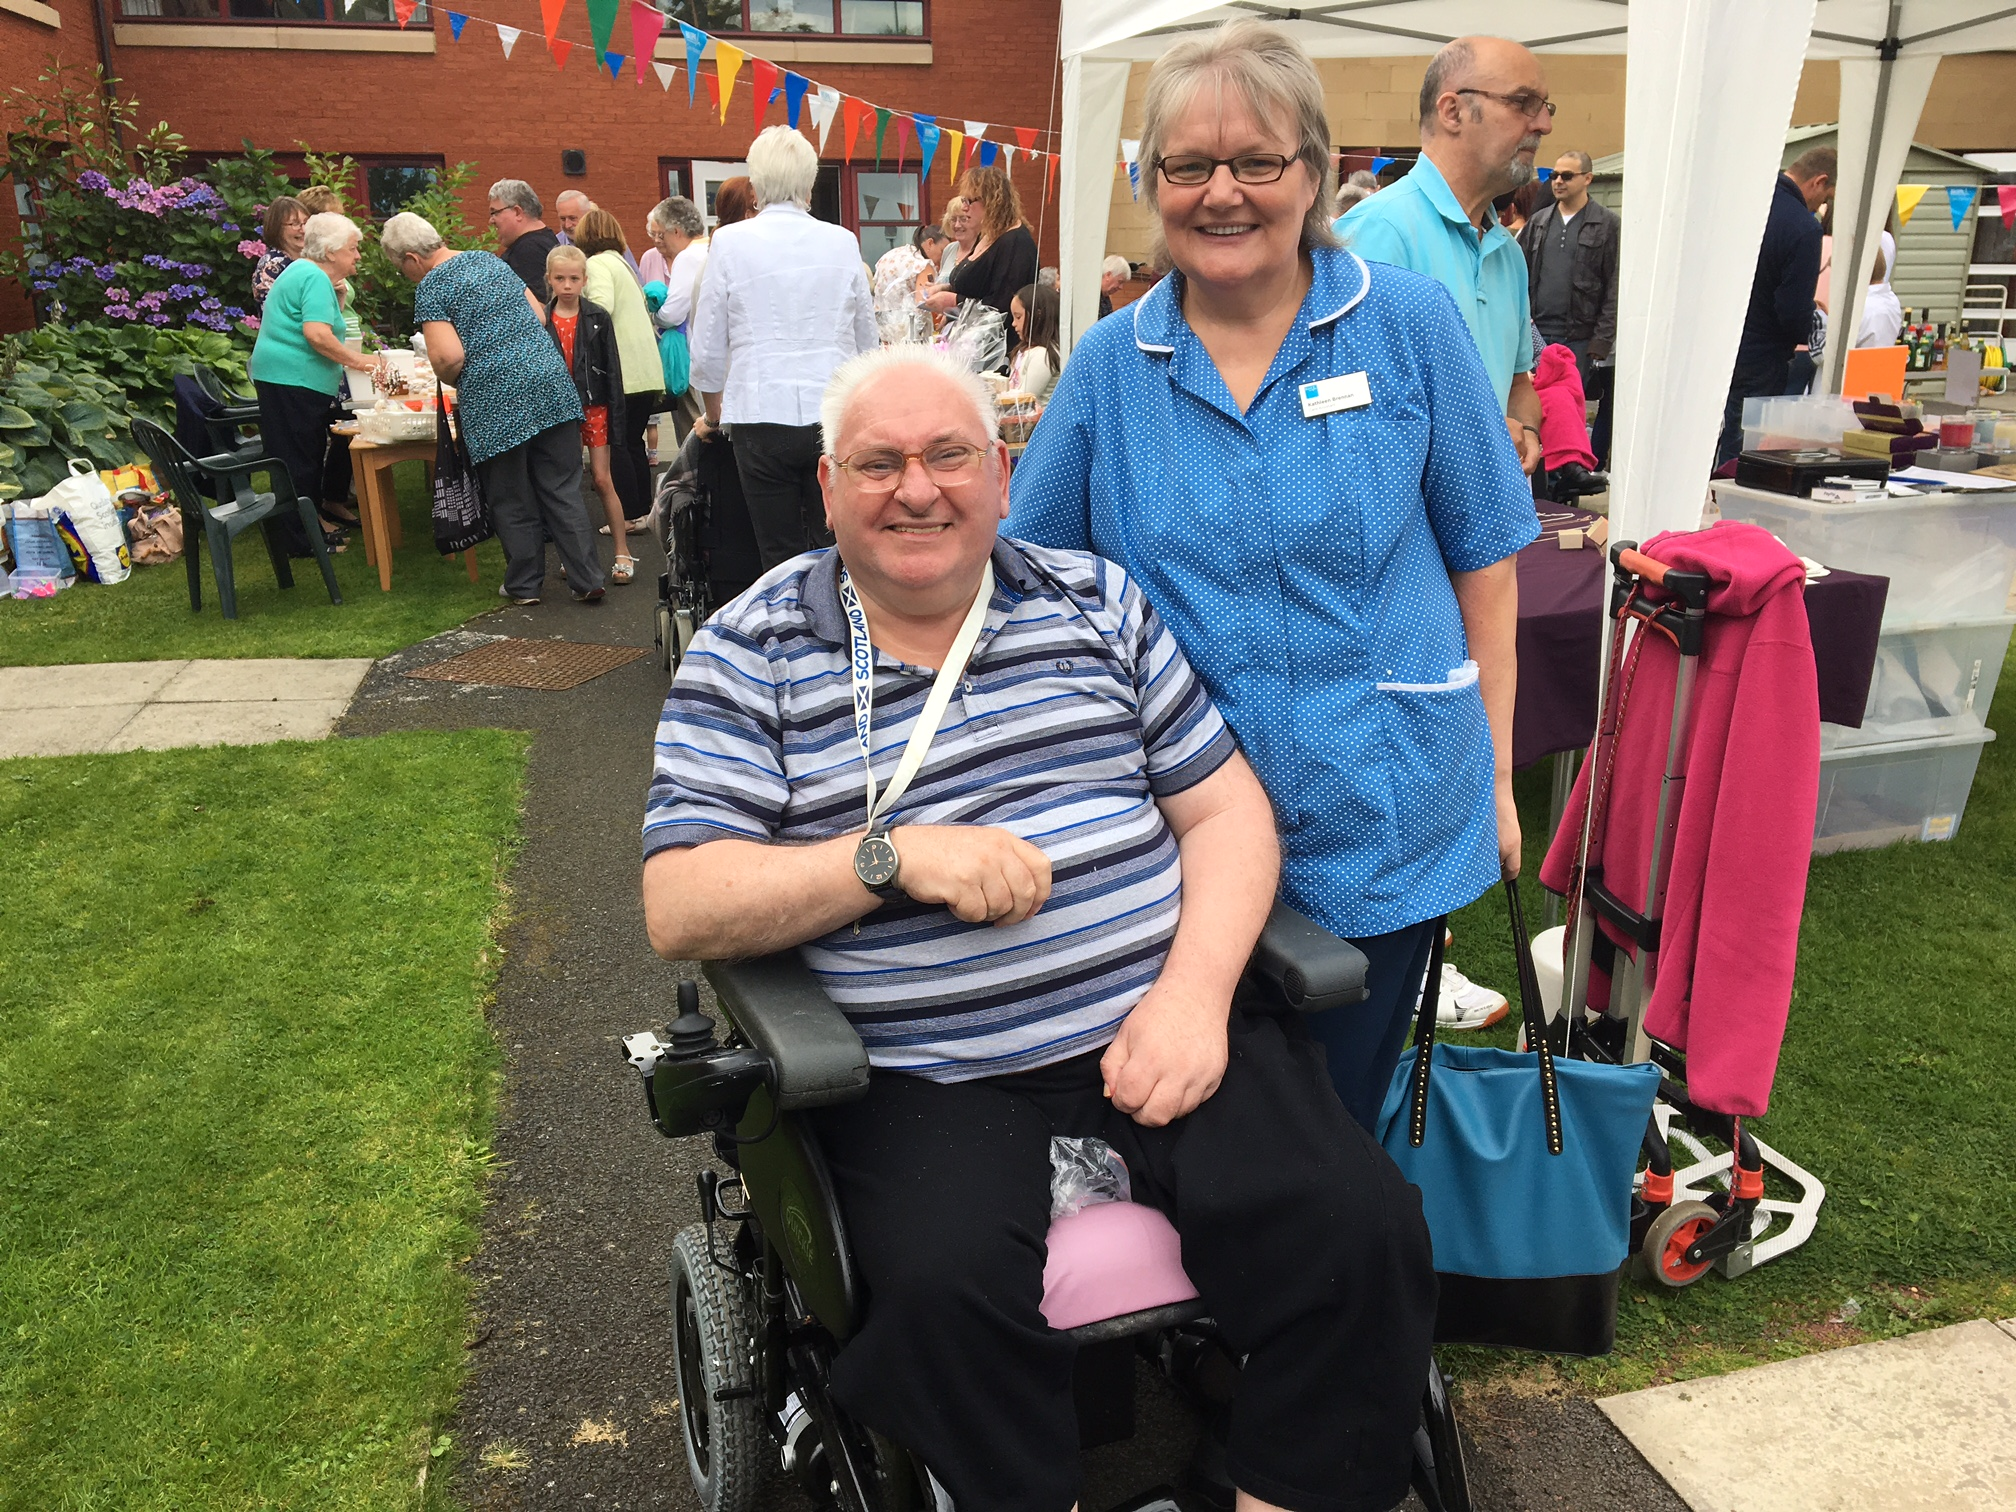 Not just down to 'Fete' – Care home raises hundreds from summer event